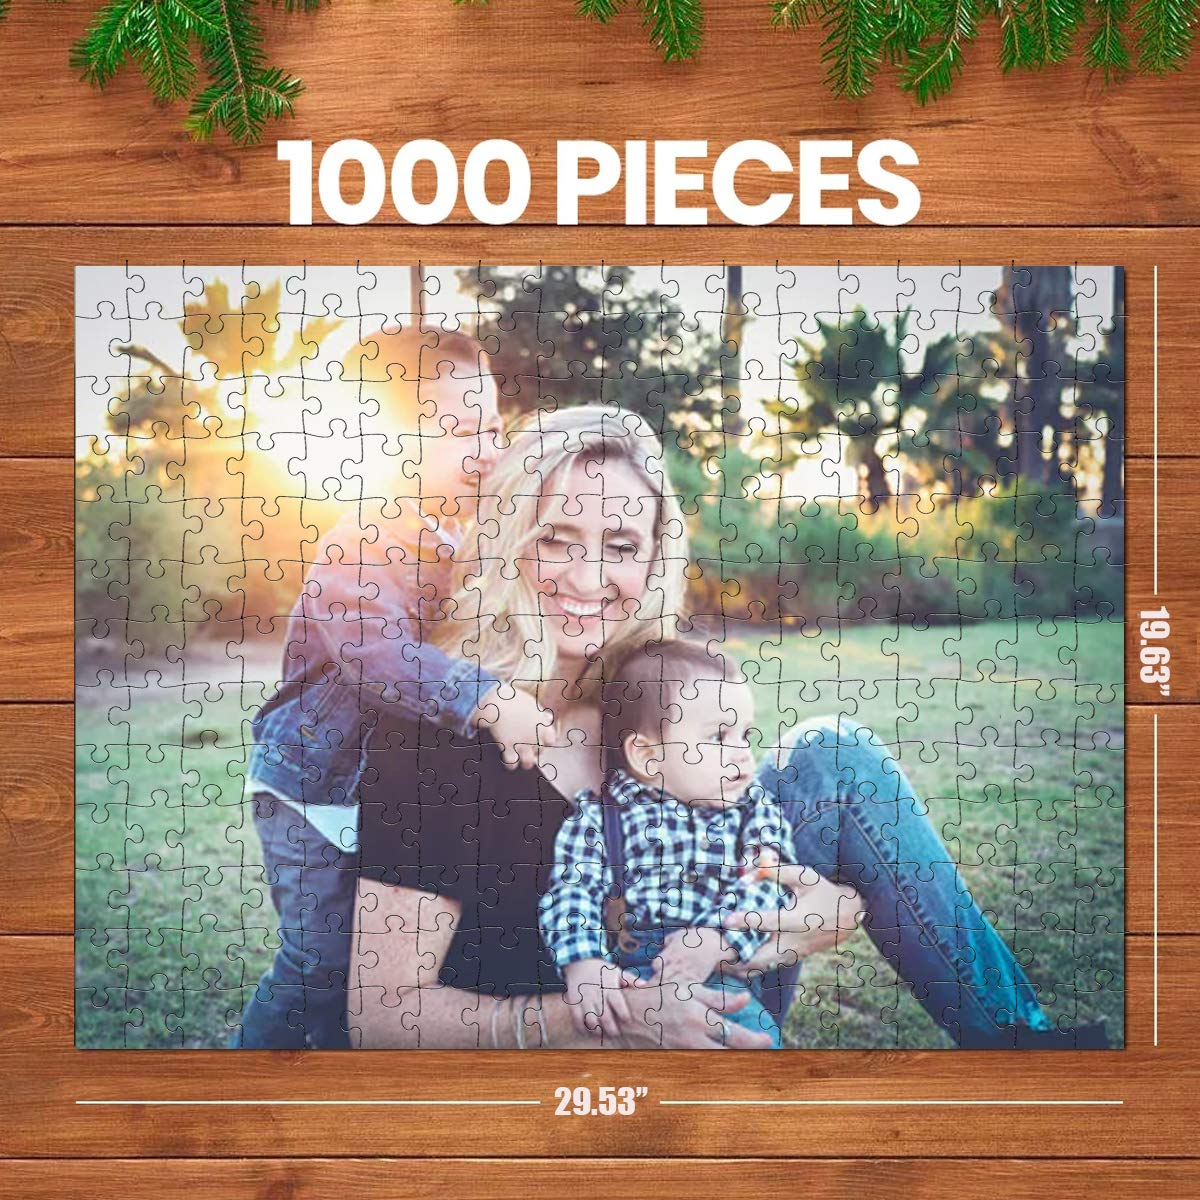 Custom Puzzle 1000 Piece for Adults, Personalized Jigsaw Puzzles with Your Photo, Family Photo Gift, Toys Gift, Boredom Buster Activity, Pet Portrait